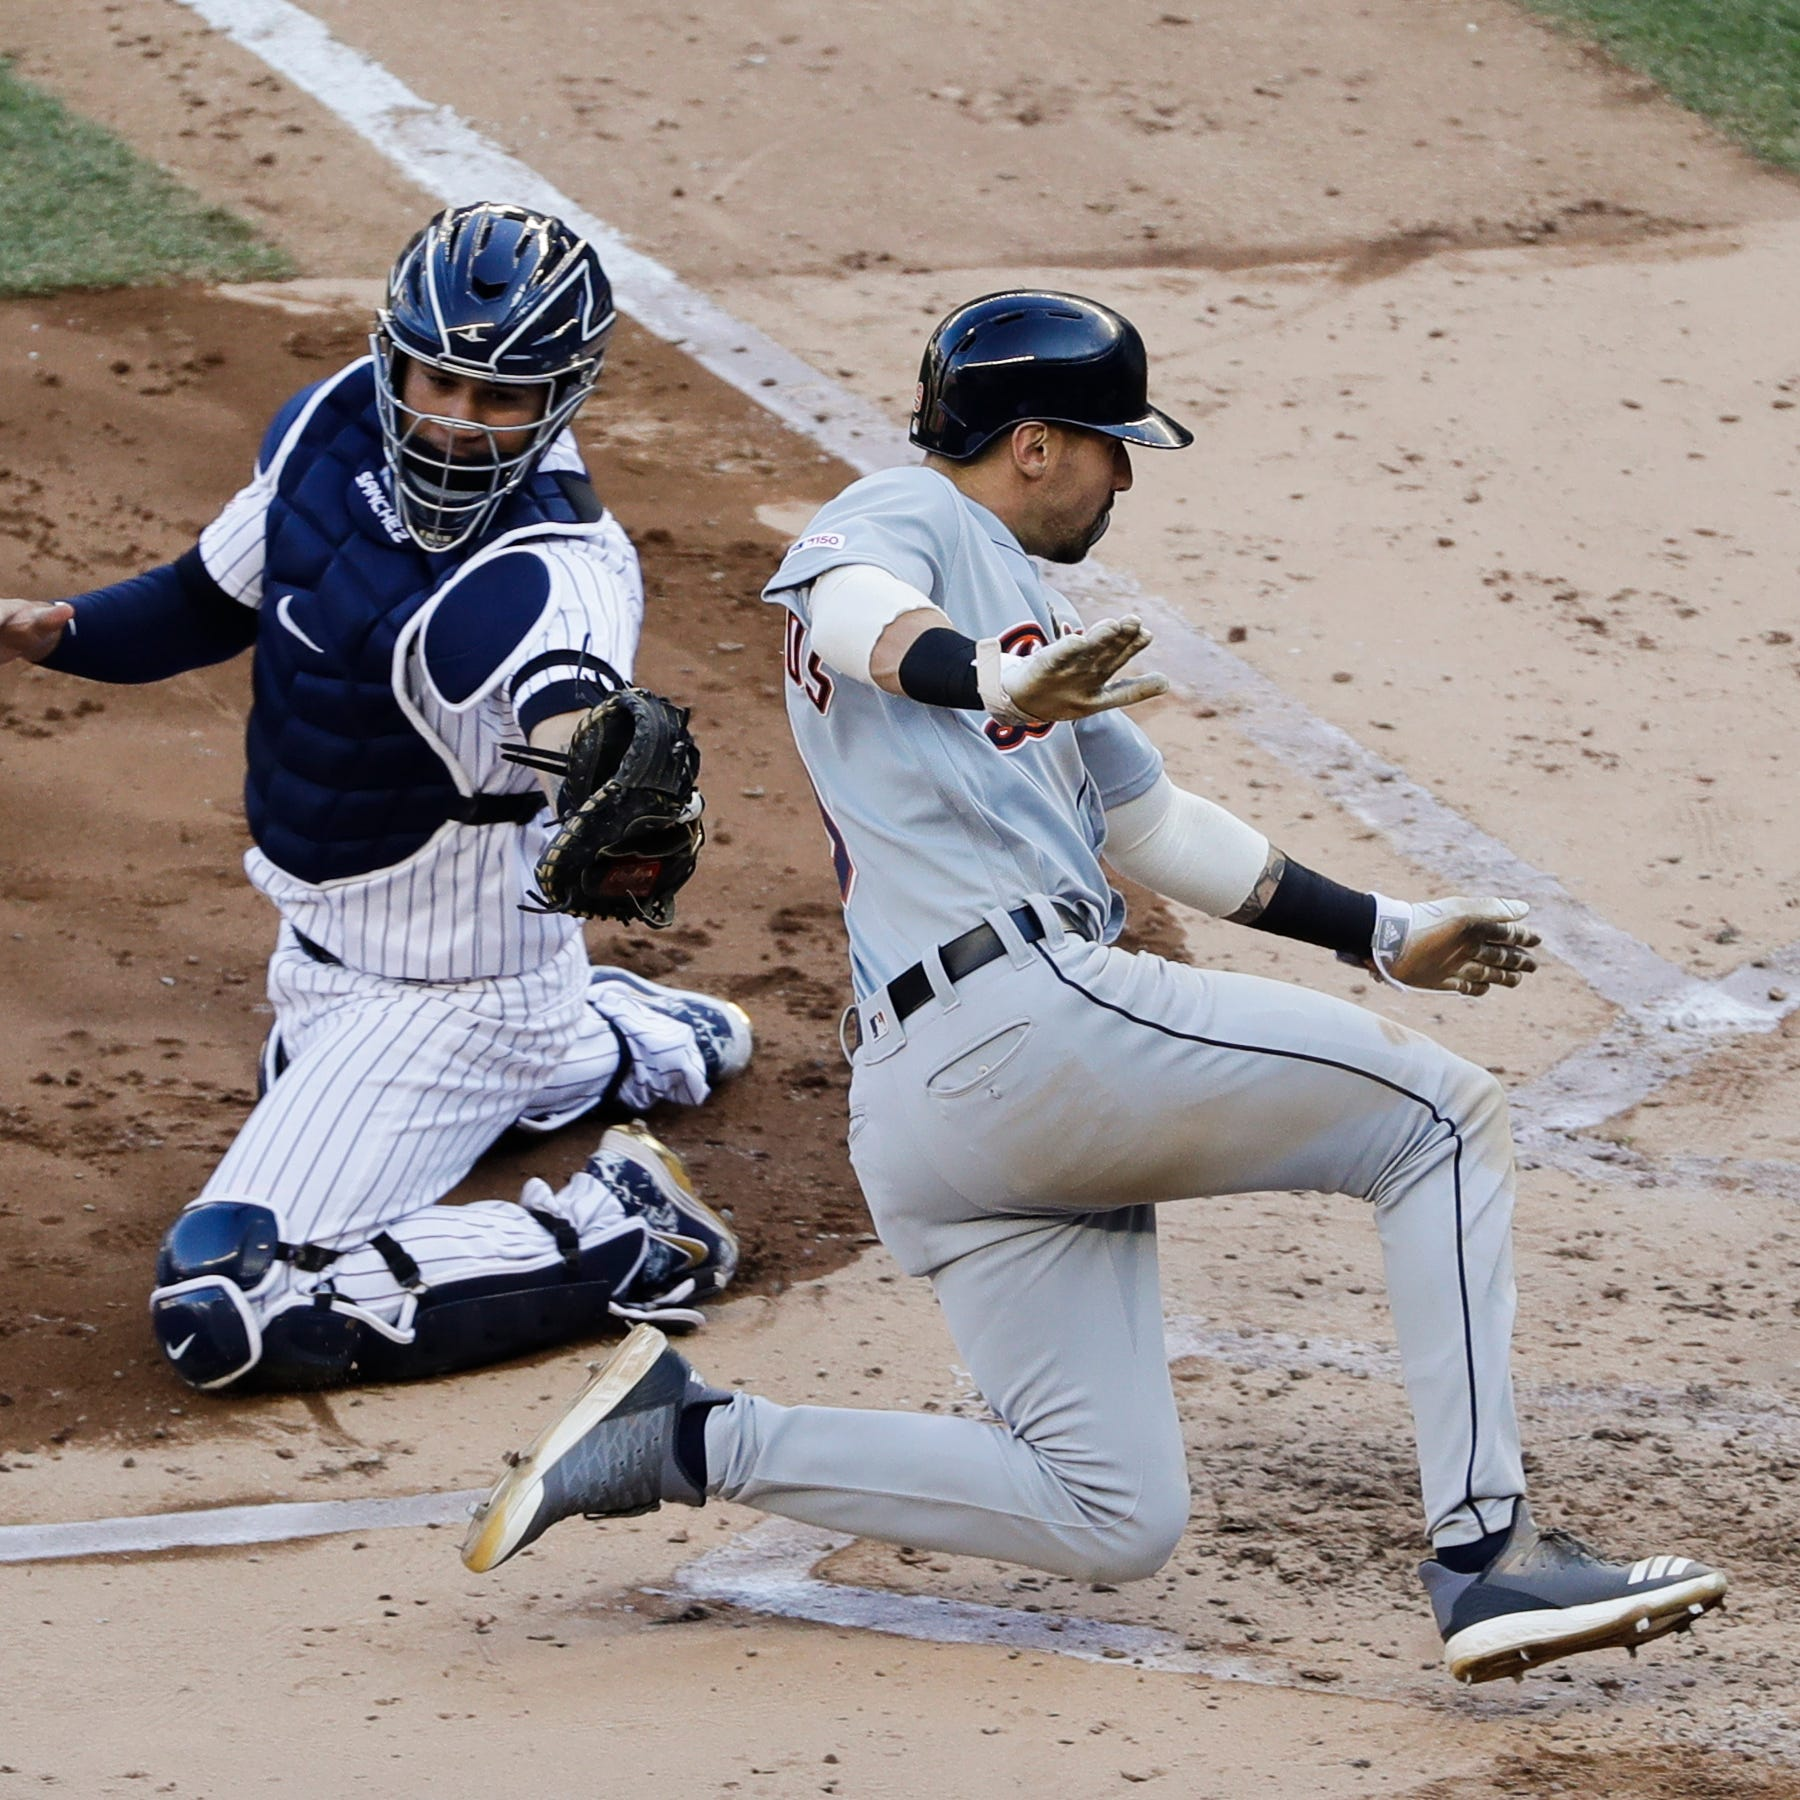 Yankees lose another series after 2-1 loss to Tigers